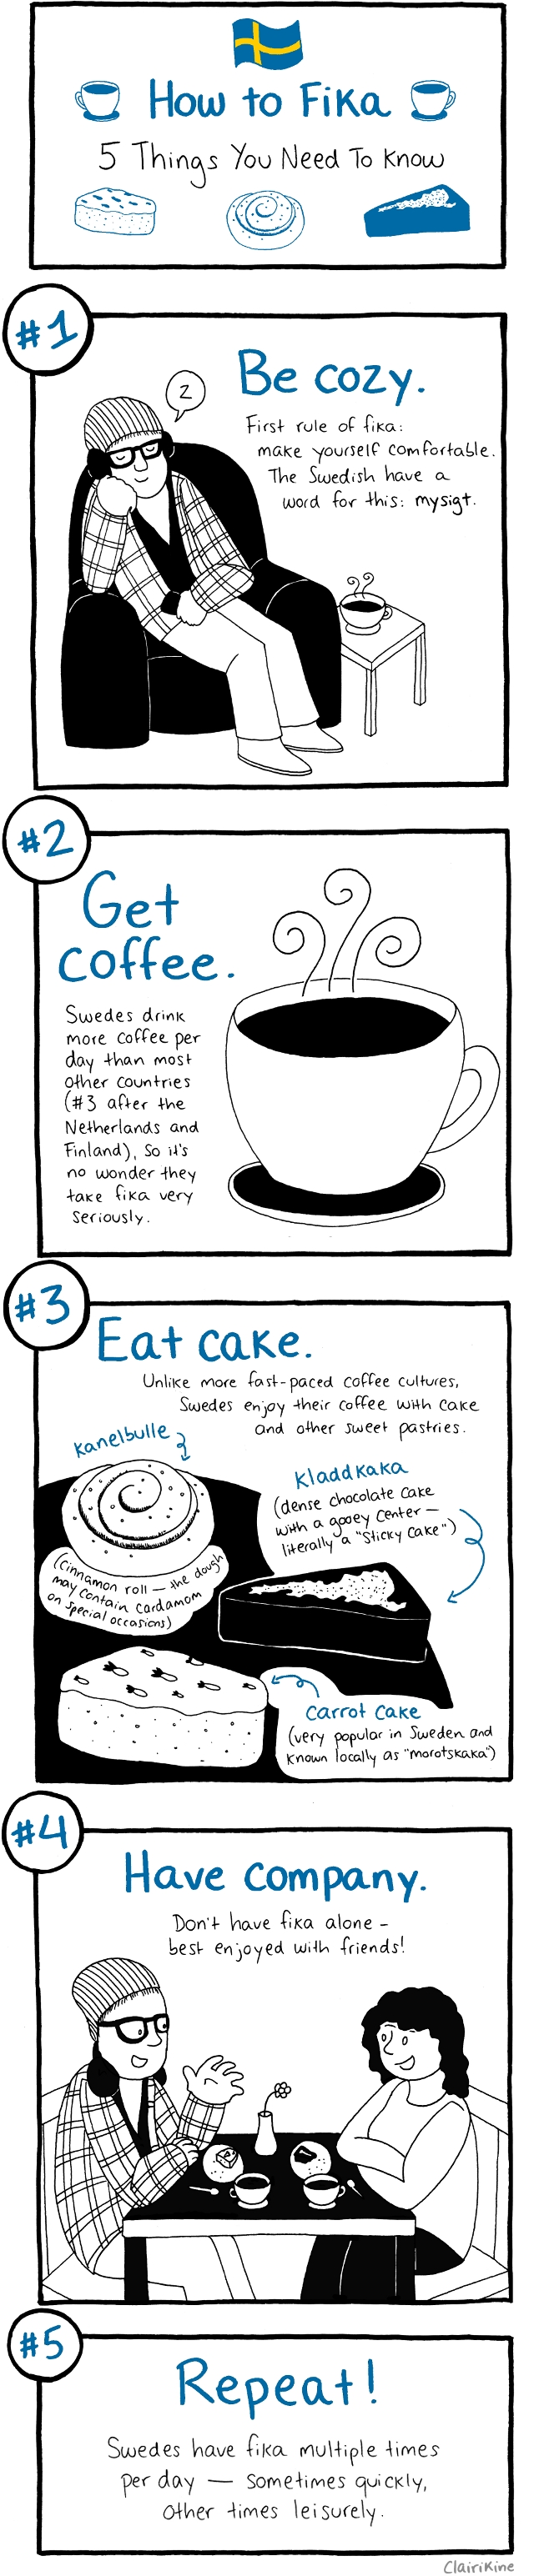 how-to-fika-sweden